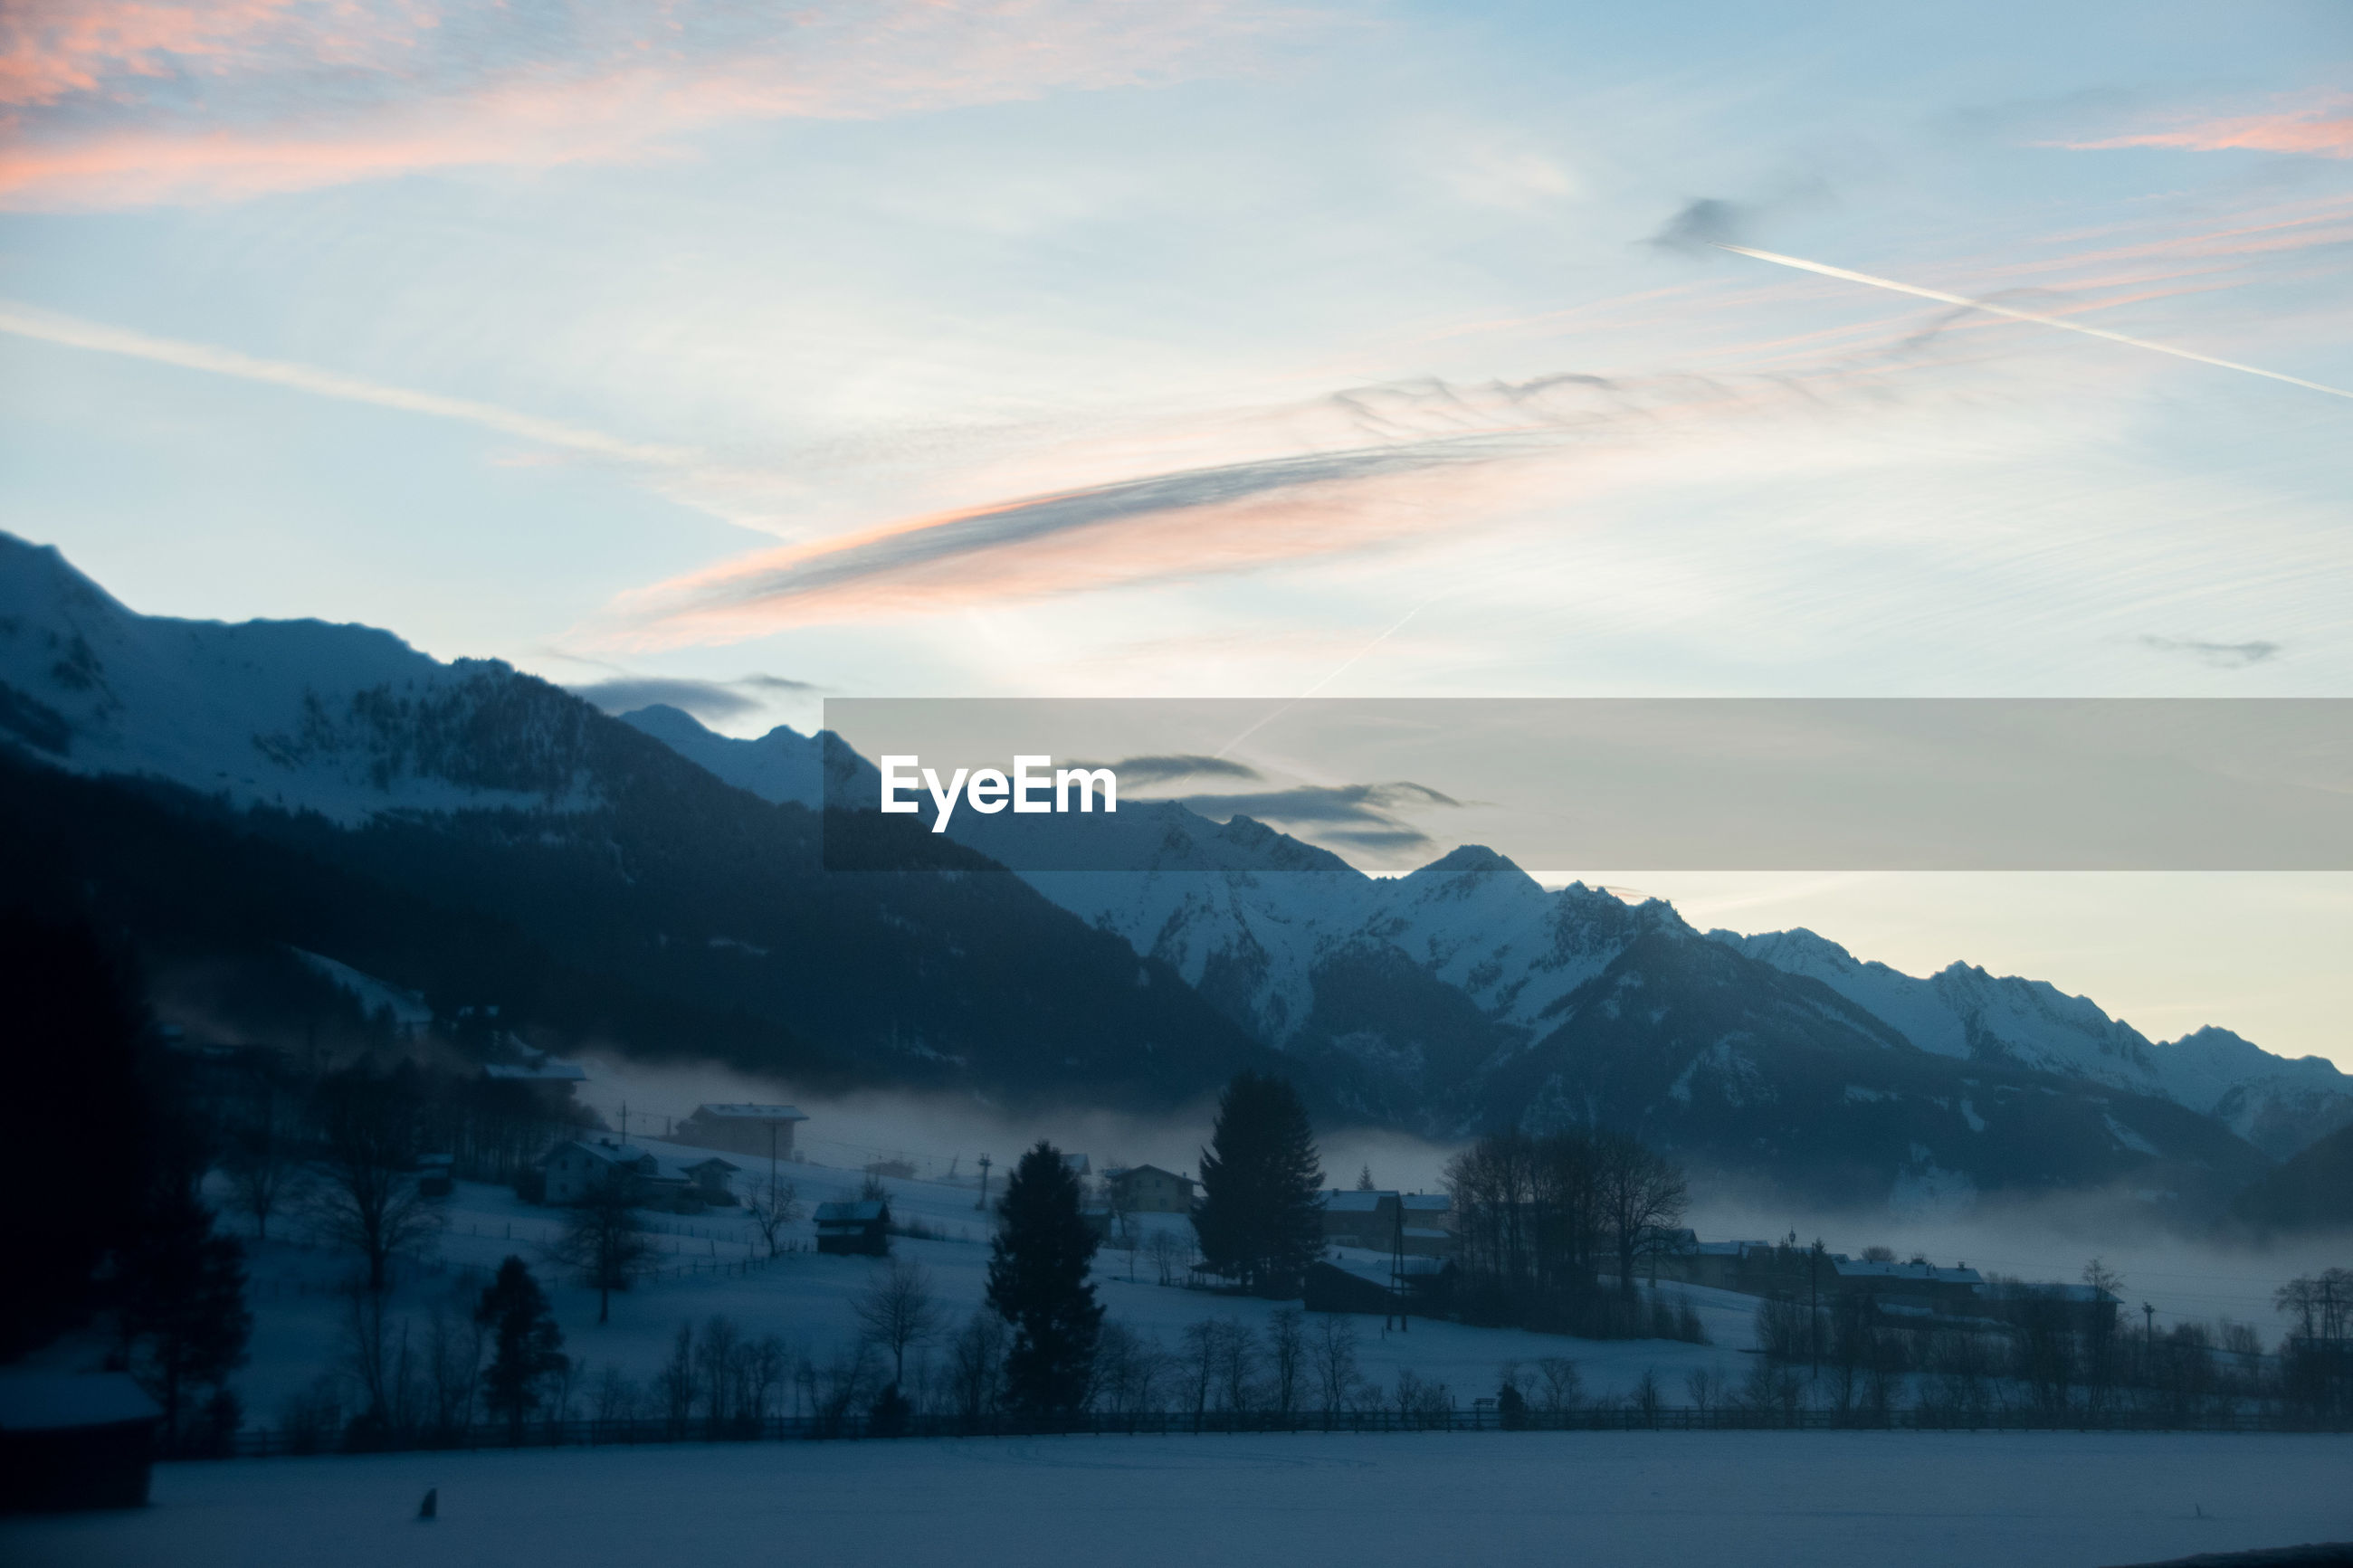 winter, cold temperature, mountain, snow, beauty in nature, sky, scenics - nature, cloud - sky, nature, tranquil scene, mountain range, tranquility, tree, environment, no people, plant, covering, idyllic, sunset, snowcapped mountain, outdoors